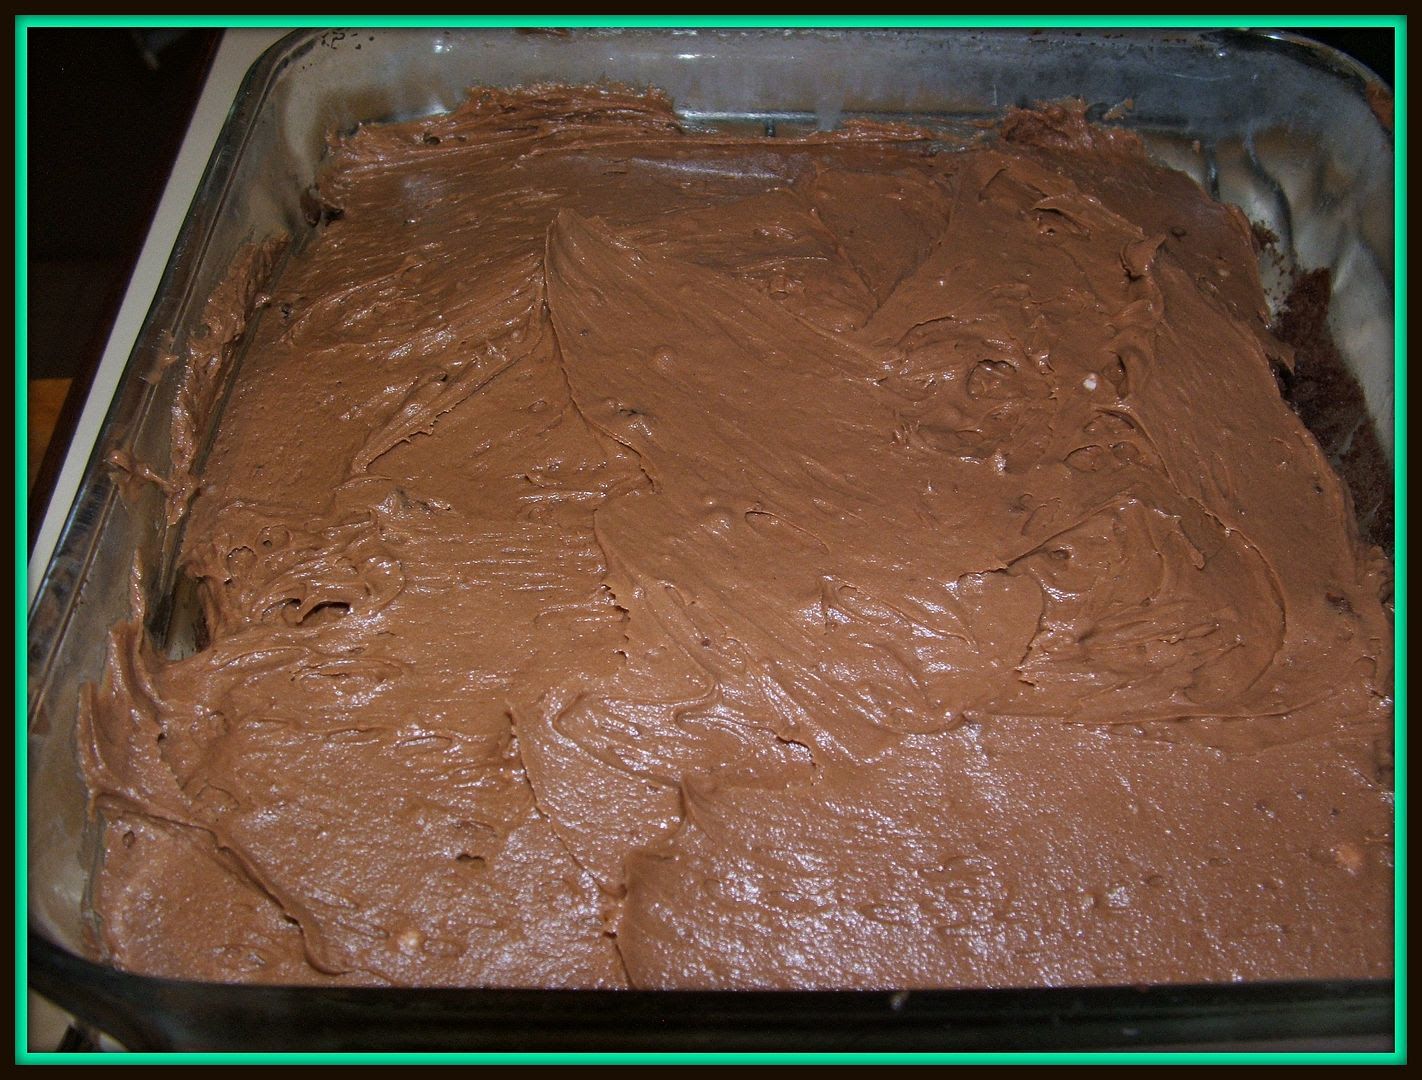 Mint Kissed Cocoa Brownies by Angie Ouellette-Tower for godsgrowinggarden.com photo 003_zps10f5bbc5.jpg